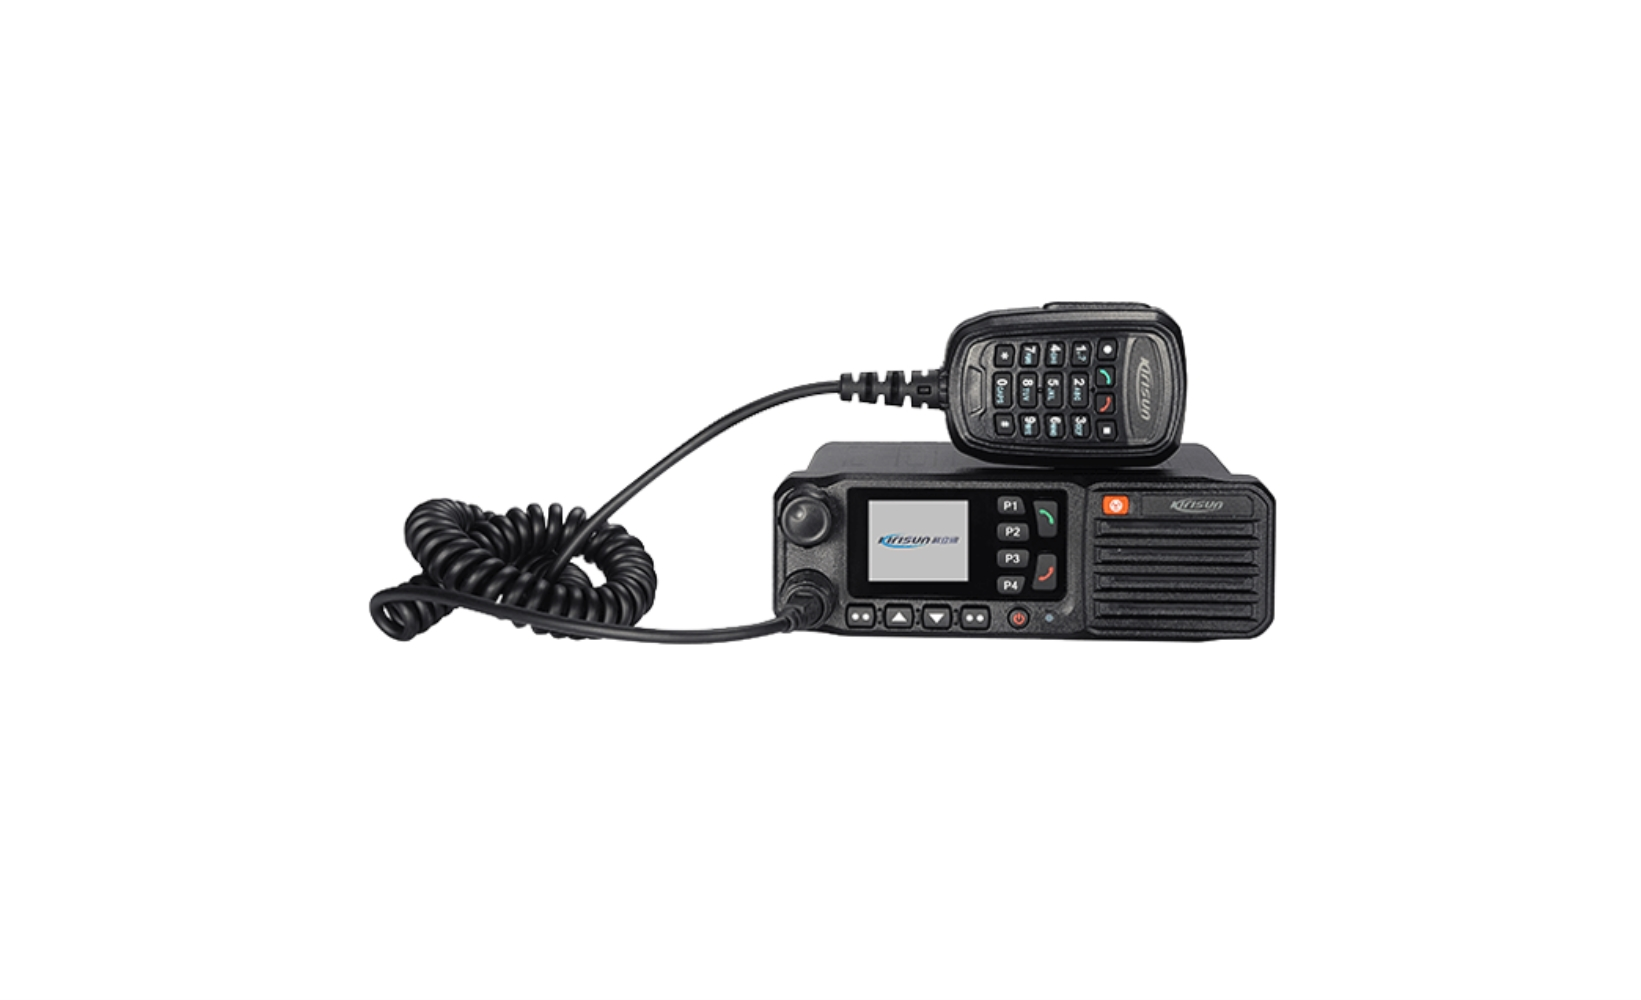 photo of Kirisun TM-840-VHF-45 - 1024 Channel, 40 Watt, VHF DMR Mobile Radio